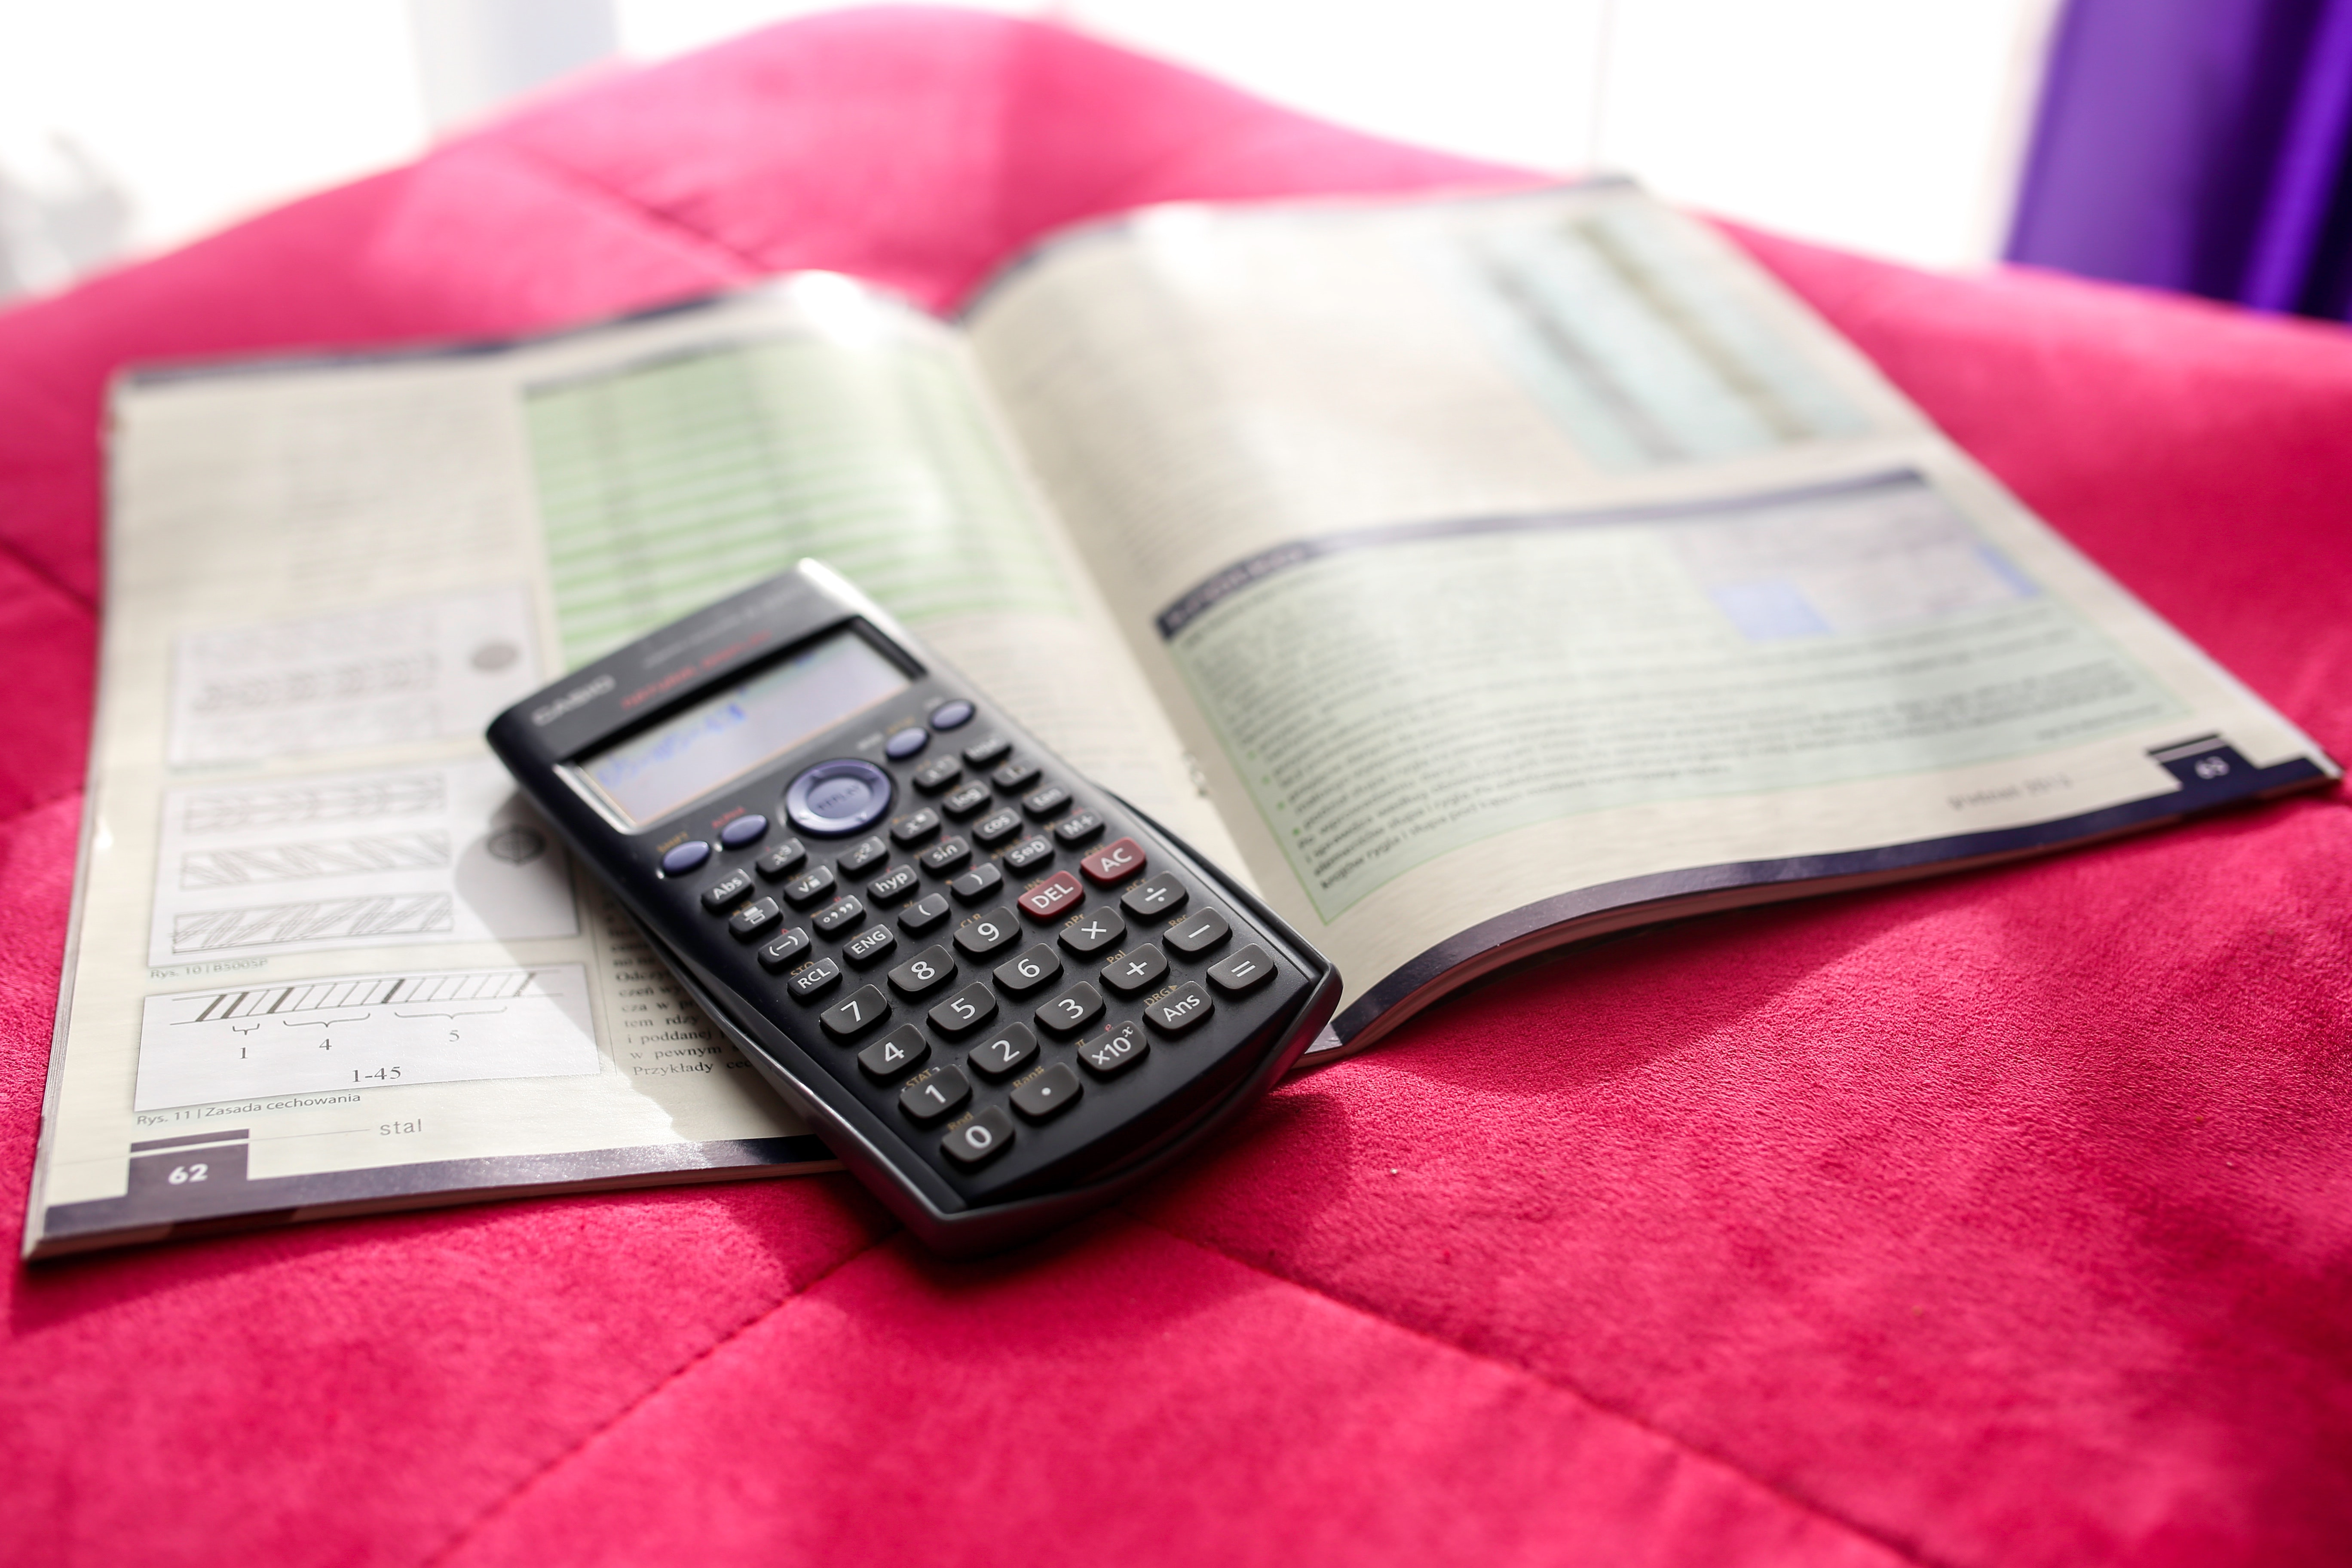 Calculator and a book on top of red fabric